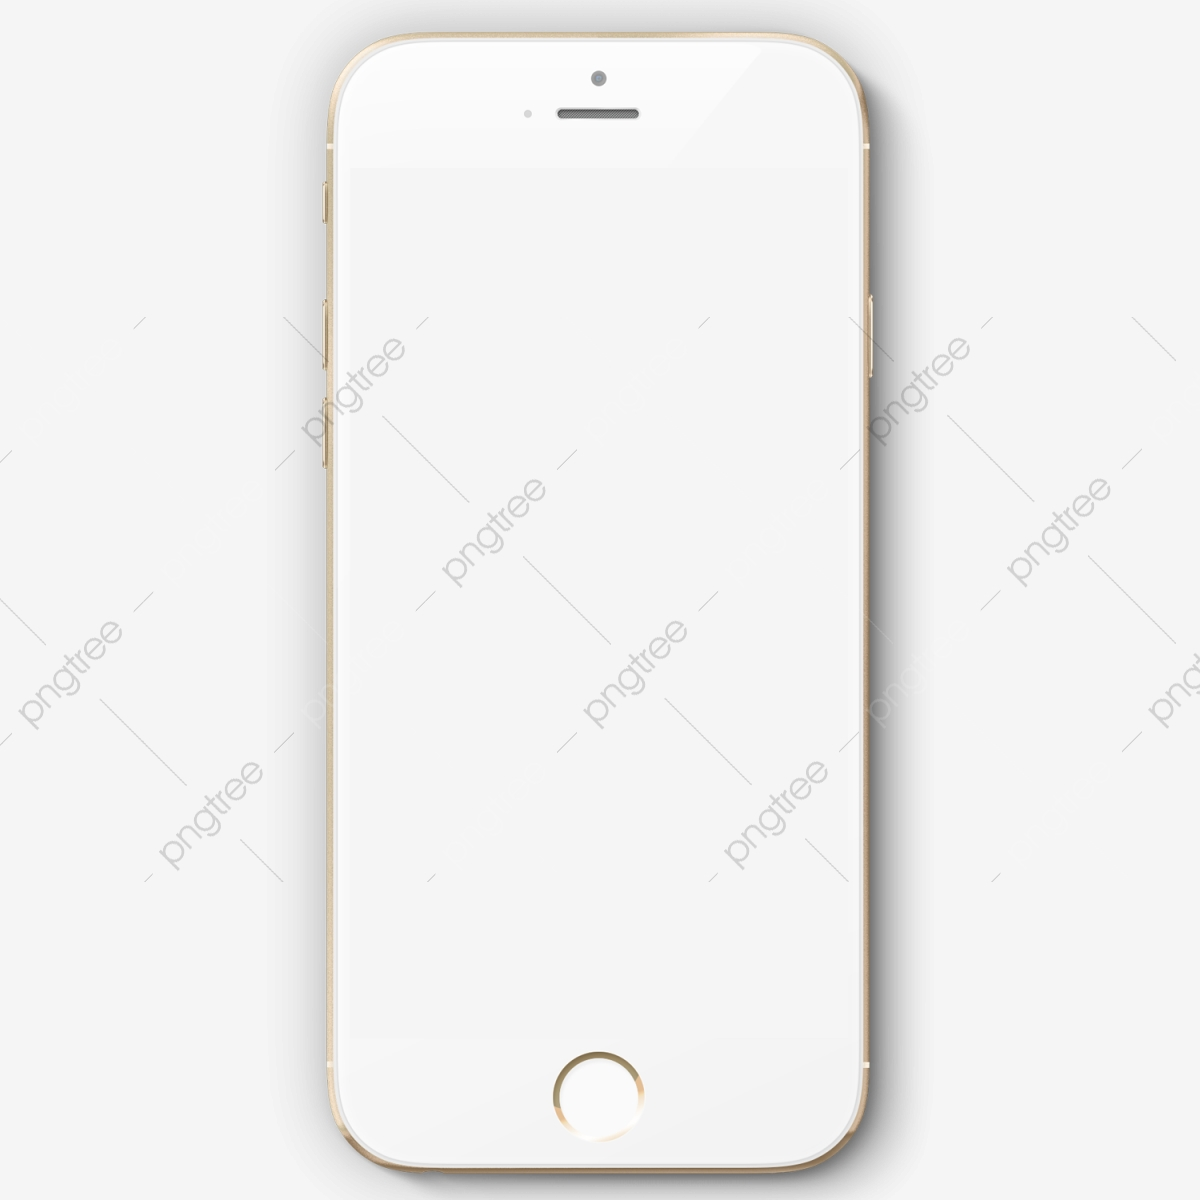 Iphone 8 Mockup Premium Mobile Phone Replenishing Png